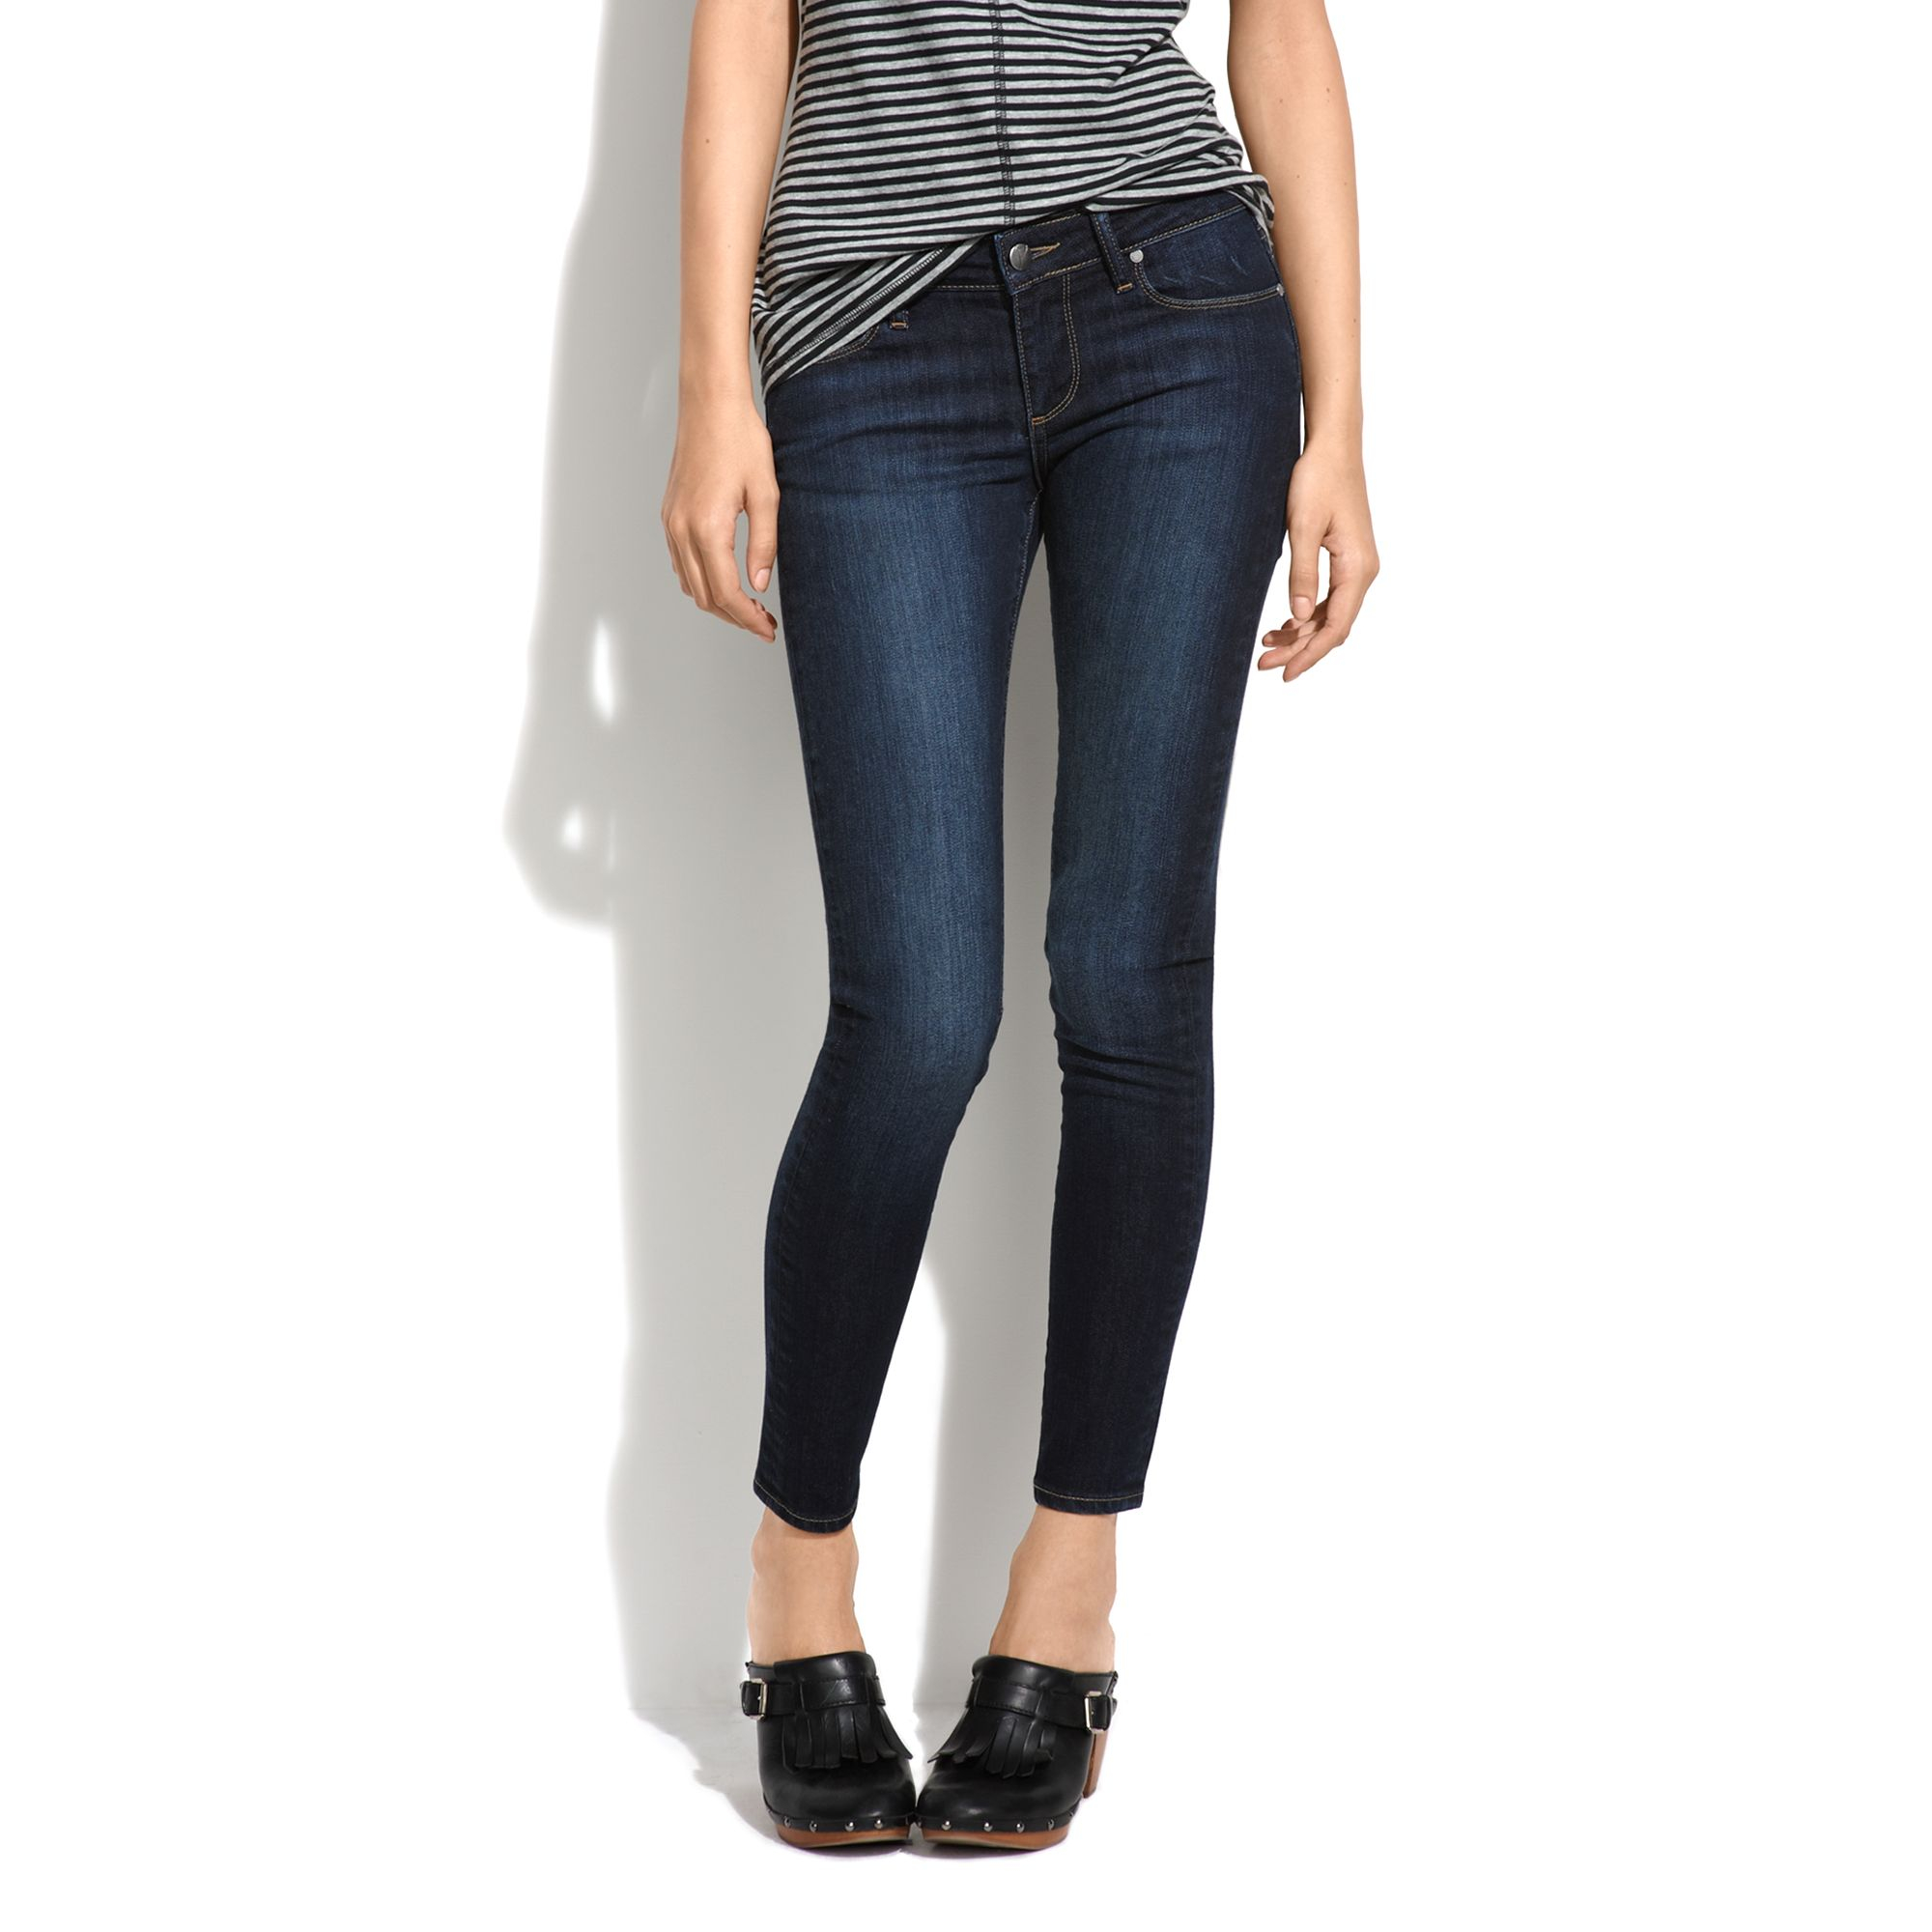 Madewell Paige® Skyline Ankle Peg Jeans In Super Rebellious in Blue